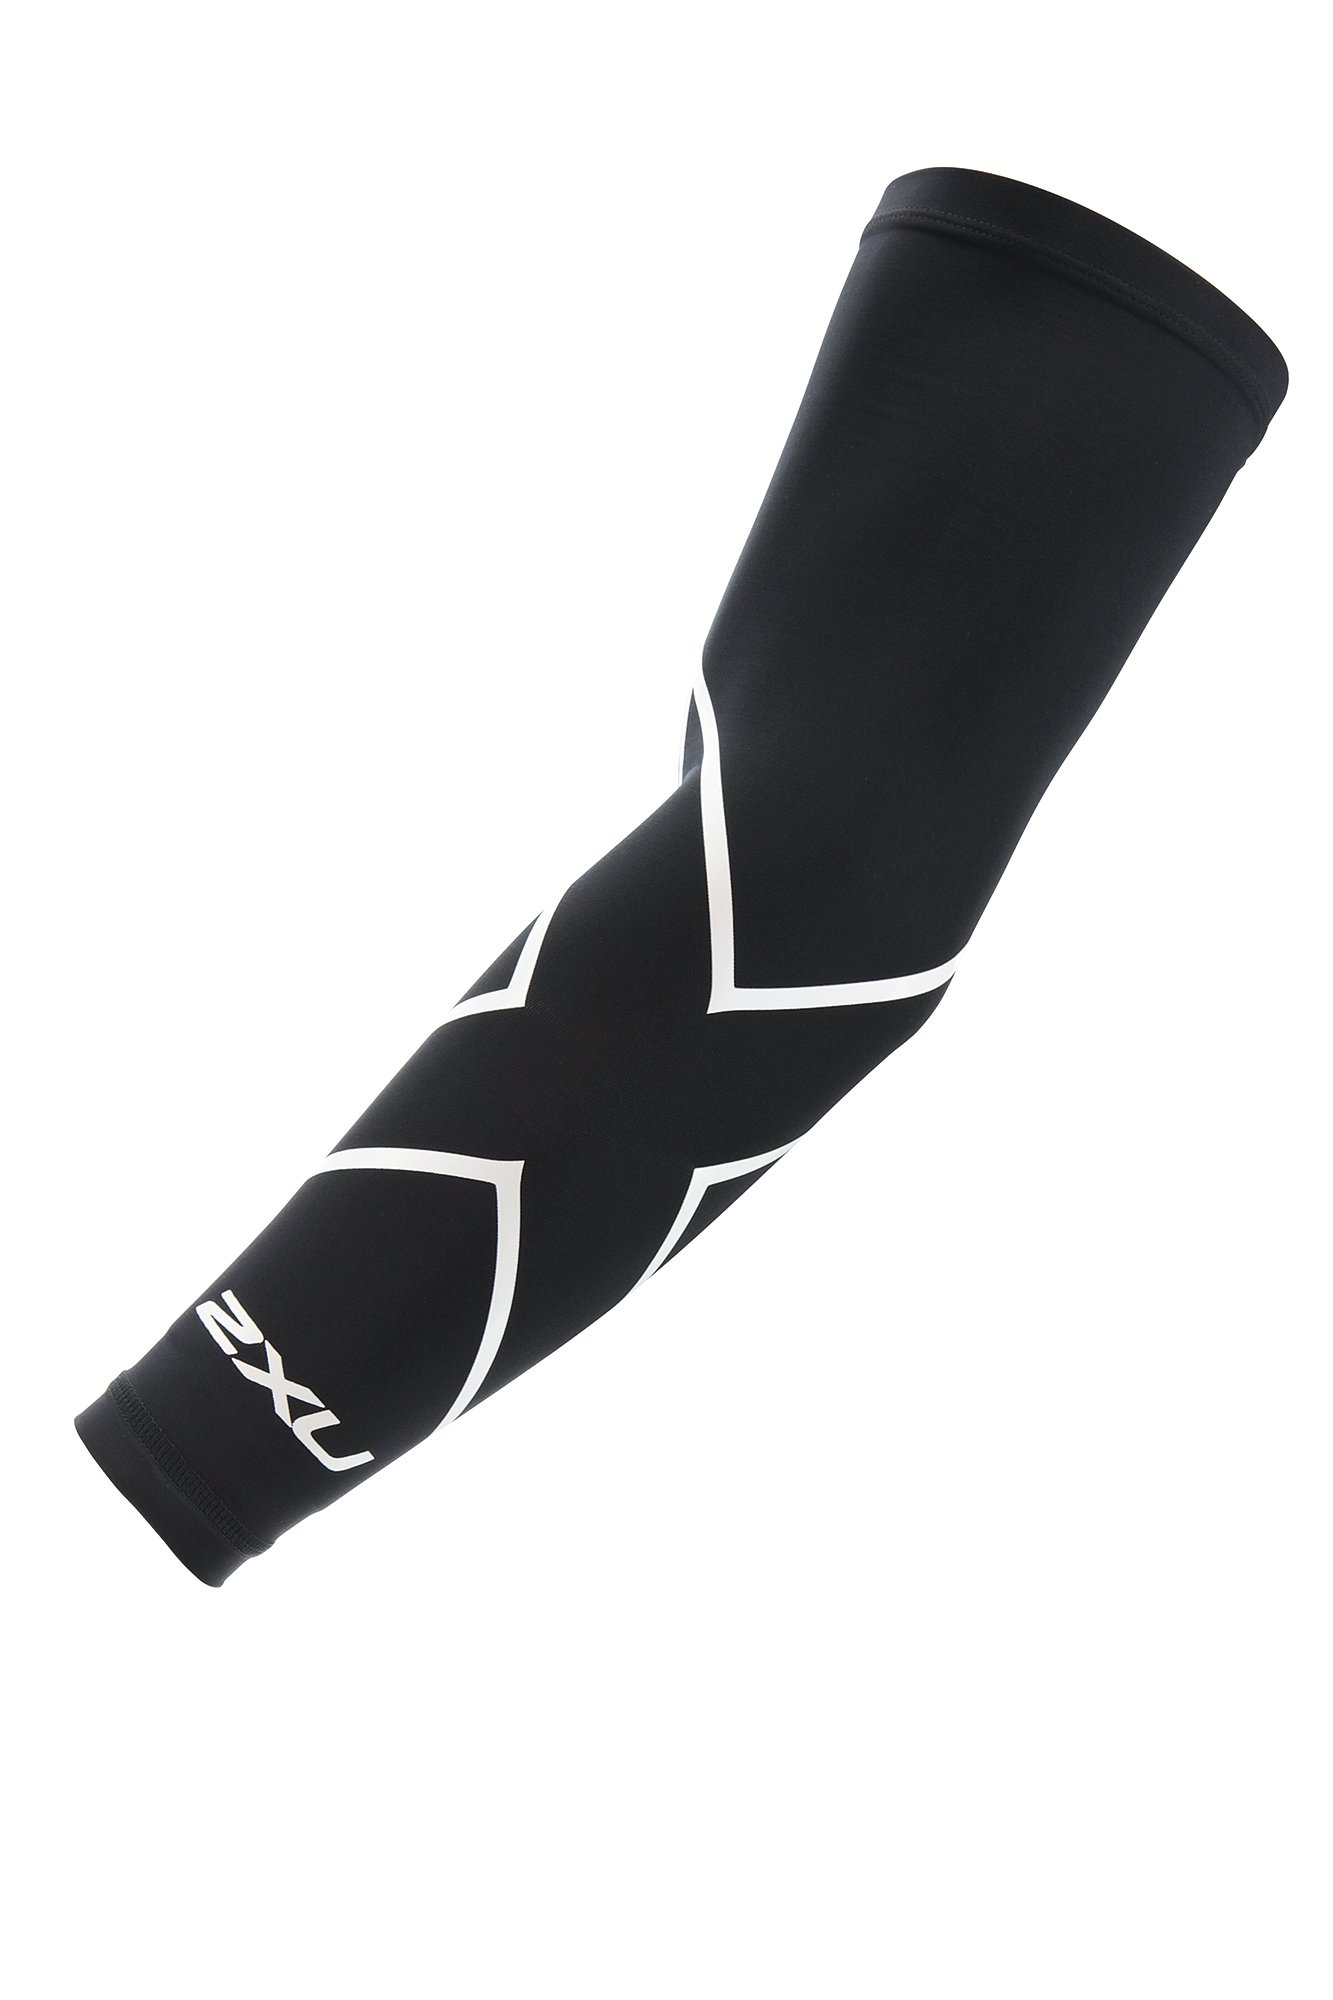 2XU Compression Single Arm Guard, Black/White, X-Small by 2XU (Image #3)